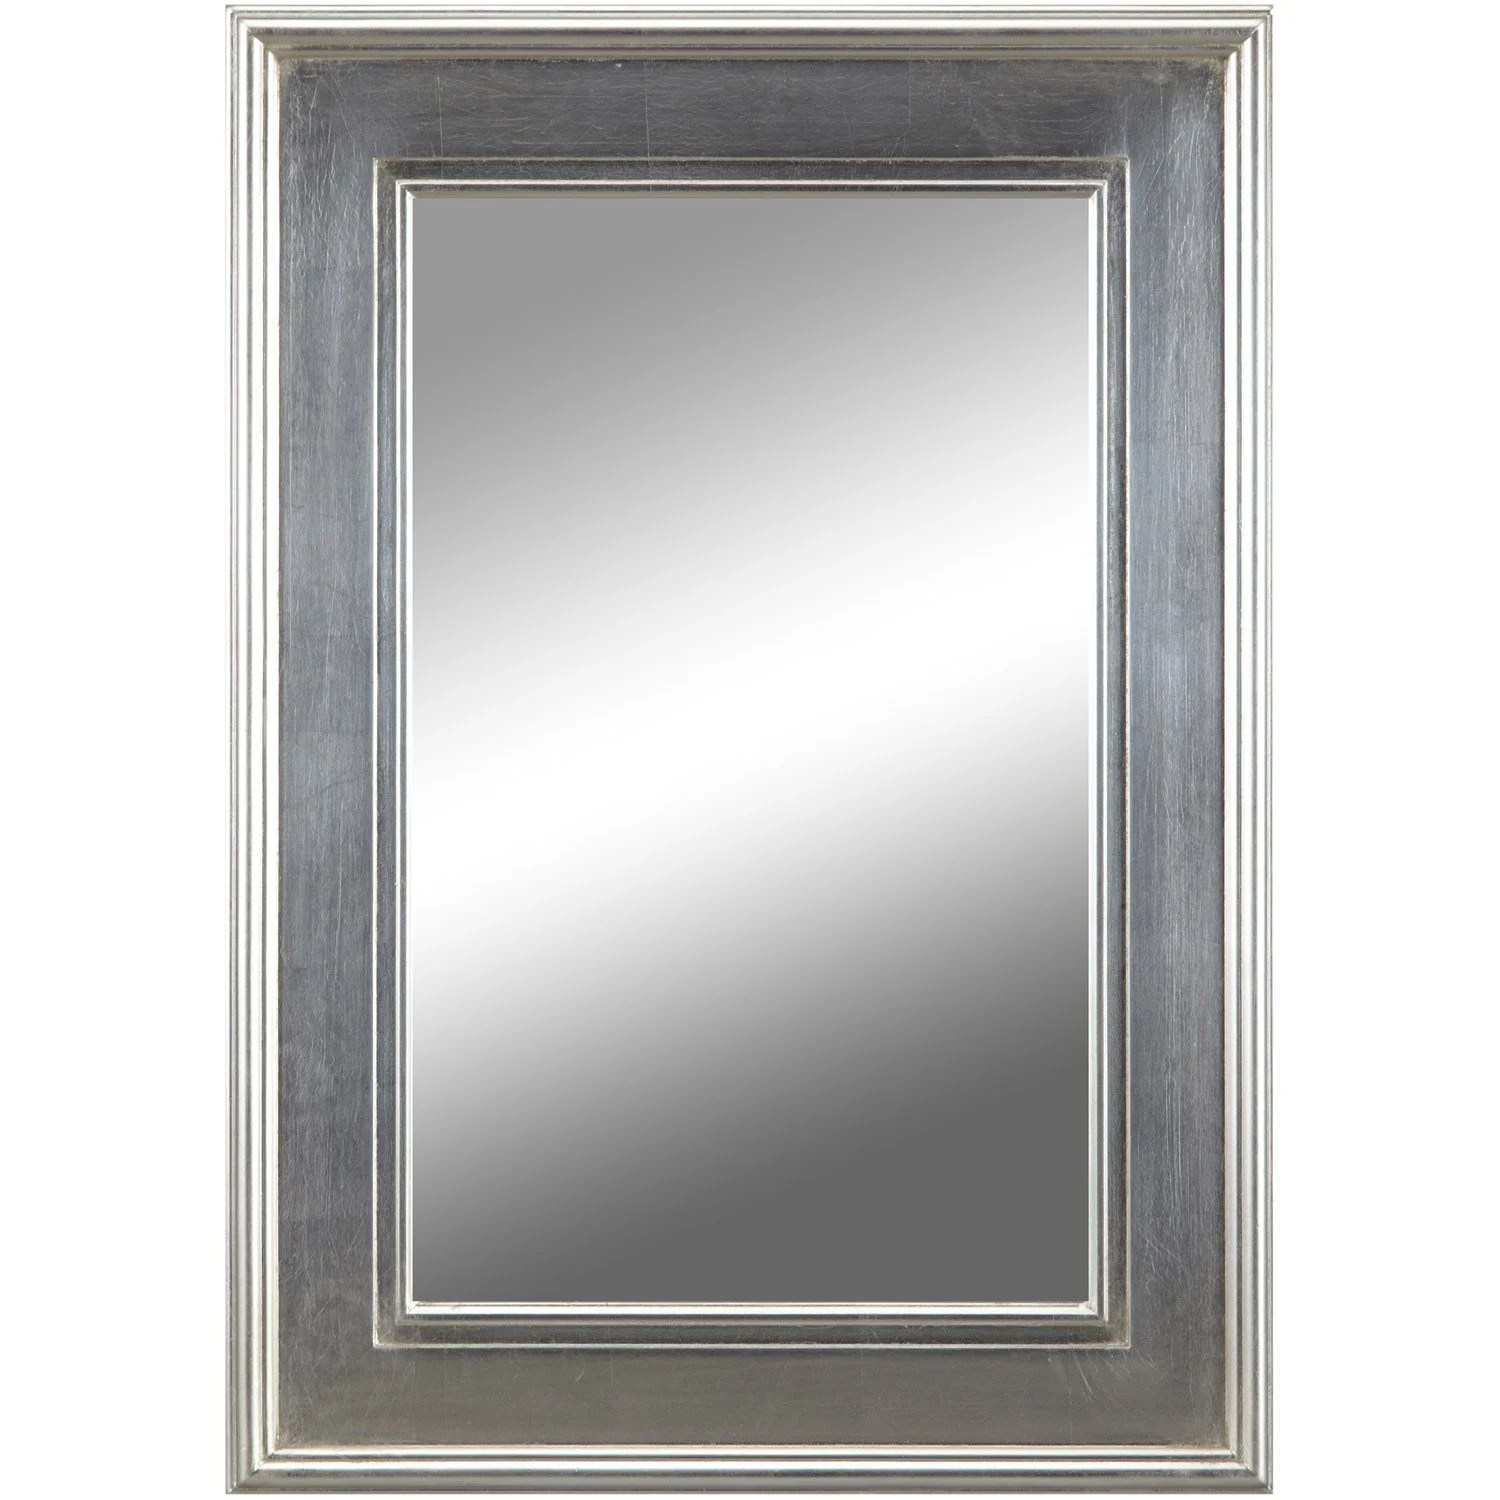 Miroir Lumineux Bluetooth Fabulous Miroir Tisbury Rectangle Argent X Cm Leroy Merlin